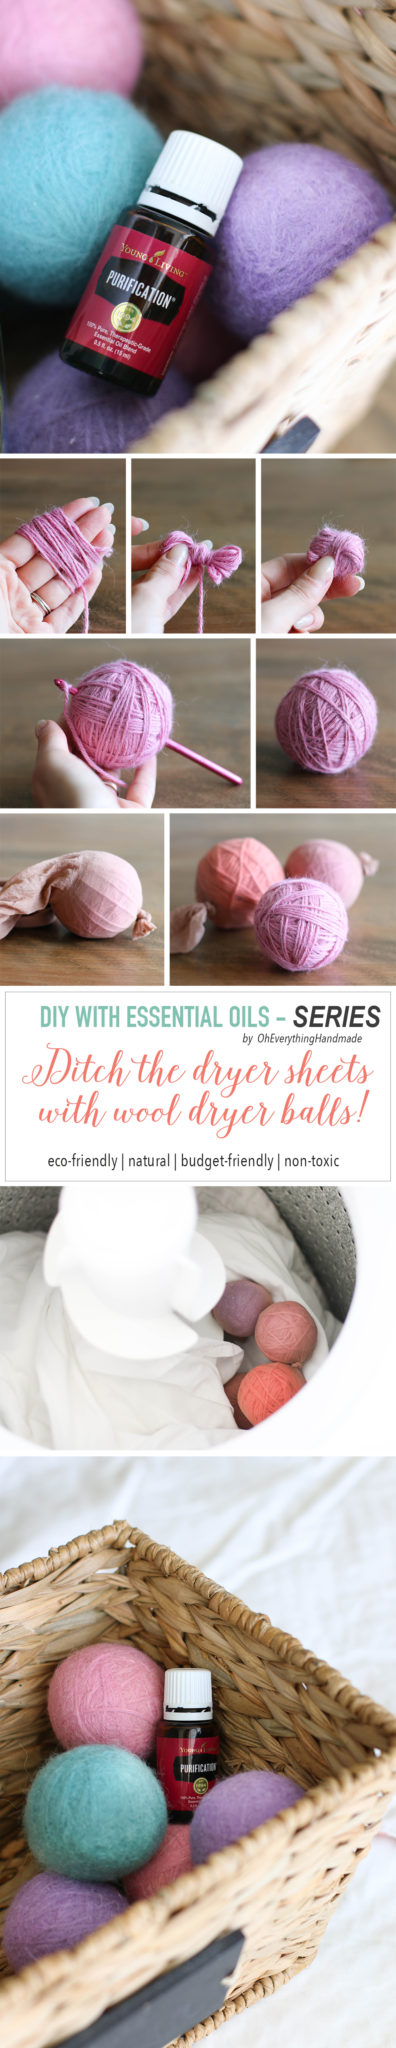 DIY with Essential Oils - Dryer balls tutorial